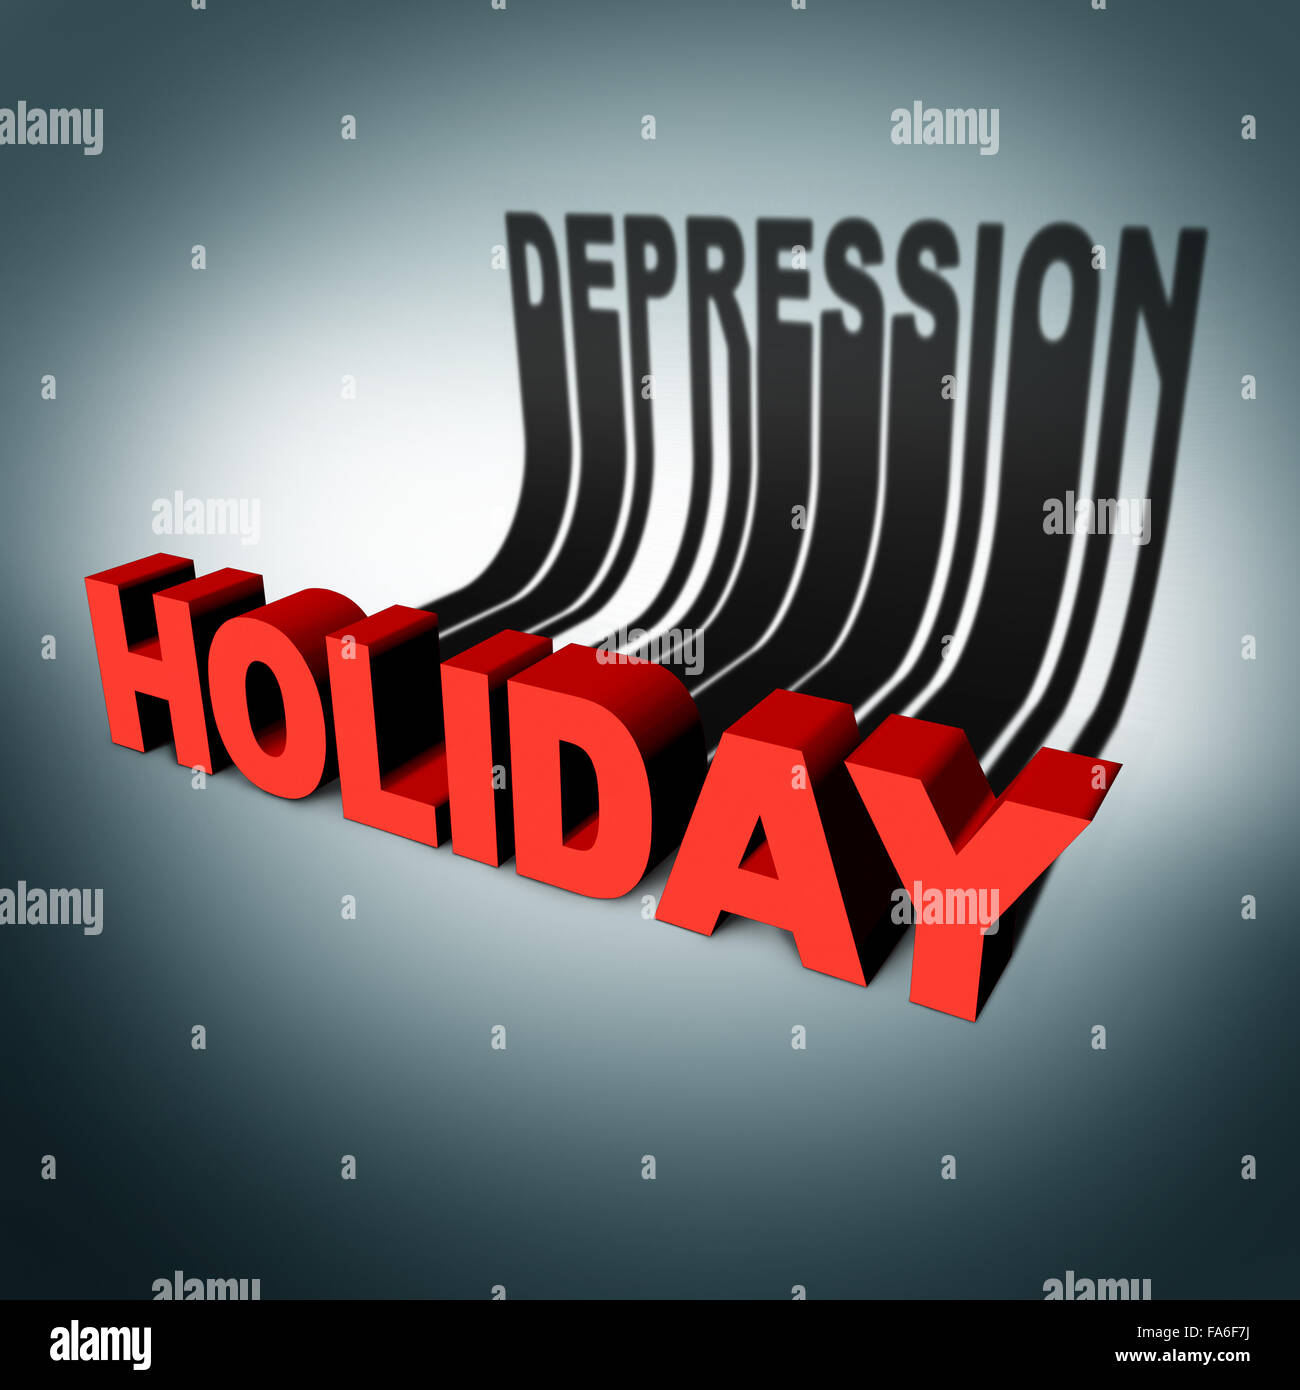 Holiday depression concept and party season anxiety and emotional crisis concept as a three dimensional text with - Stock Image